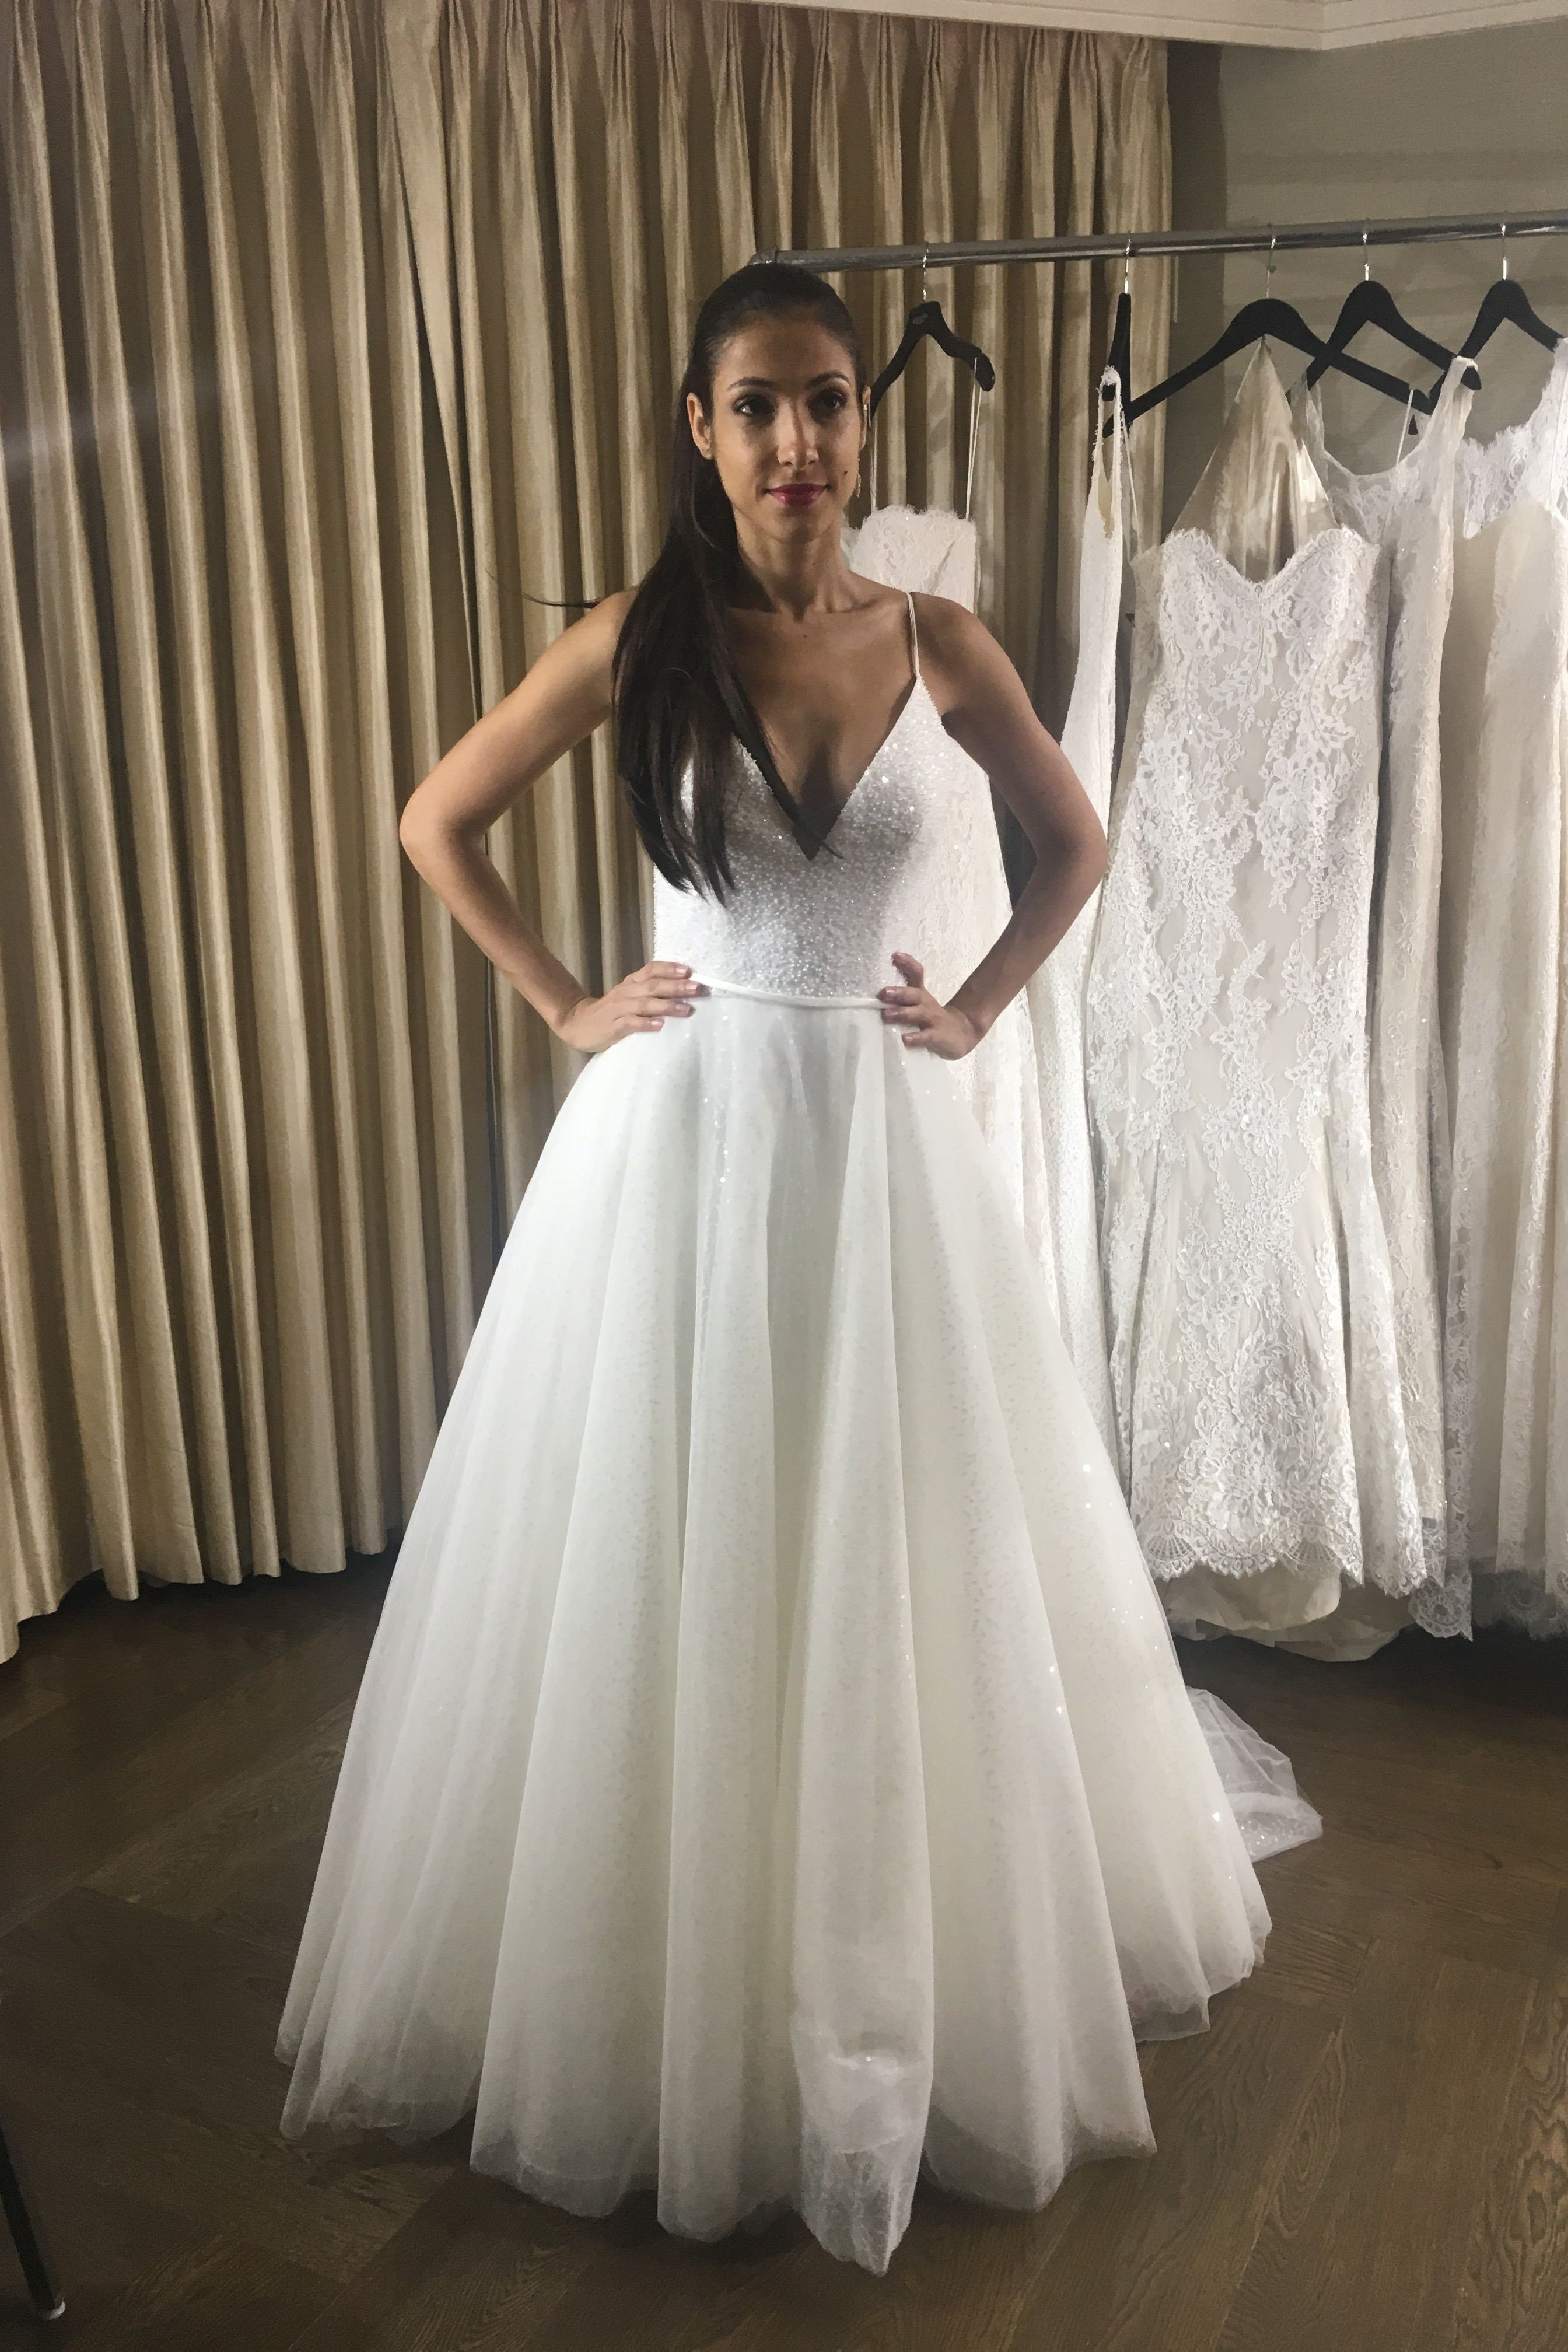 Bling Boho Wedding Dresses Spaghetti Straps Beach Wedding Gowns Sexy Backless Low Back Tulle Bohemian Bride Dress Cheap 2018